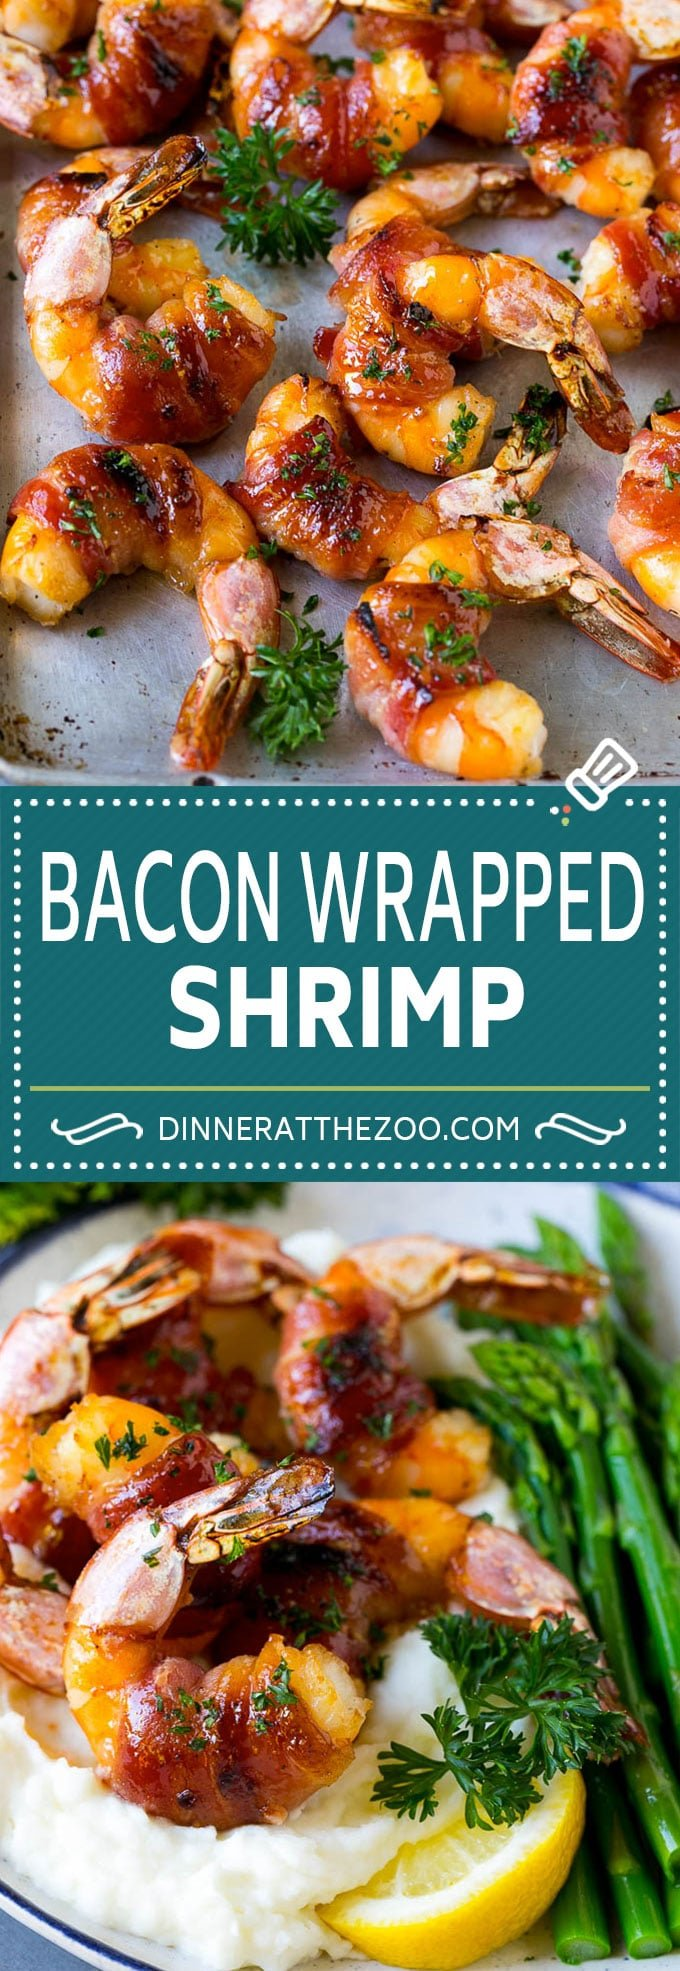 Bacon Wrapped Shrimp Recipe | Bacon Shrimp #shrimp #bacon #appetizer #dinner #dinneratthezoo #seafood